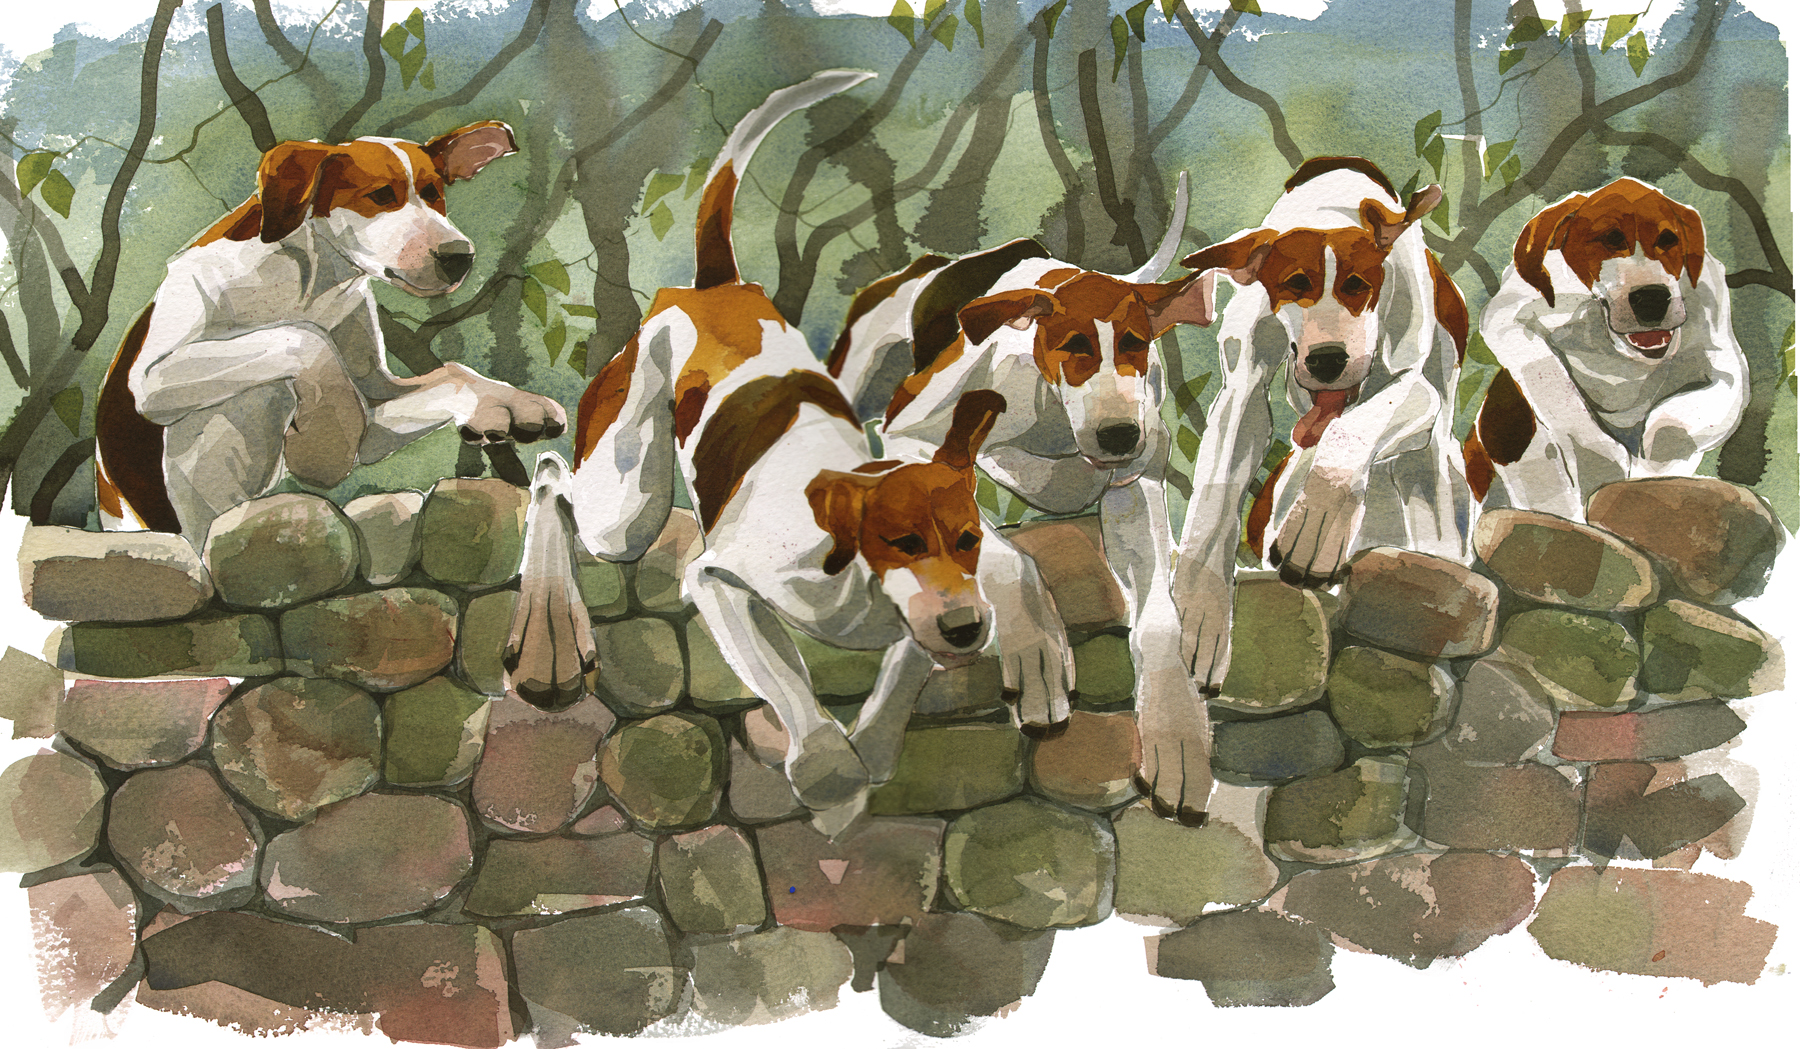 Five hounds over image